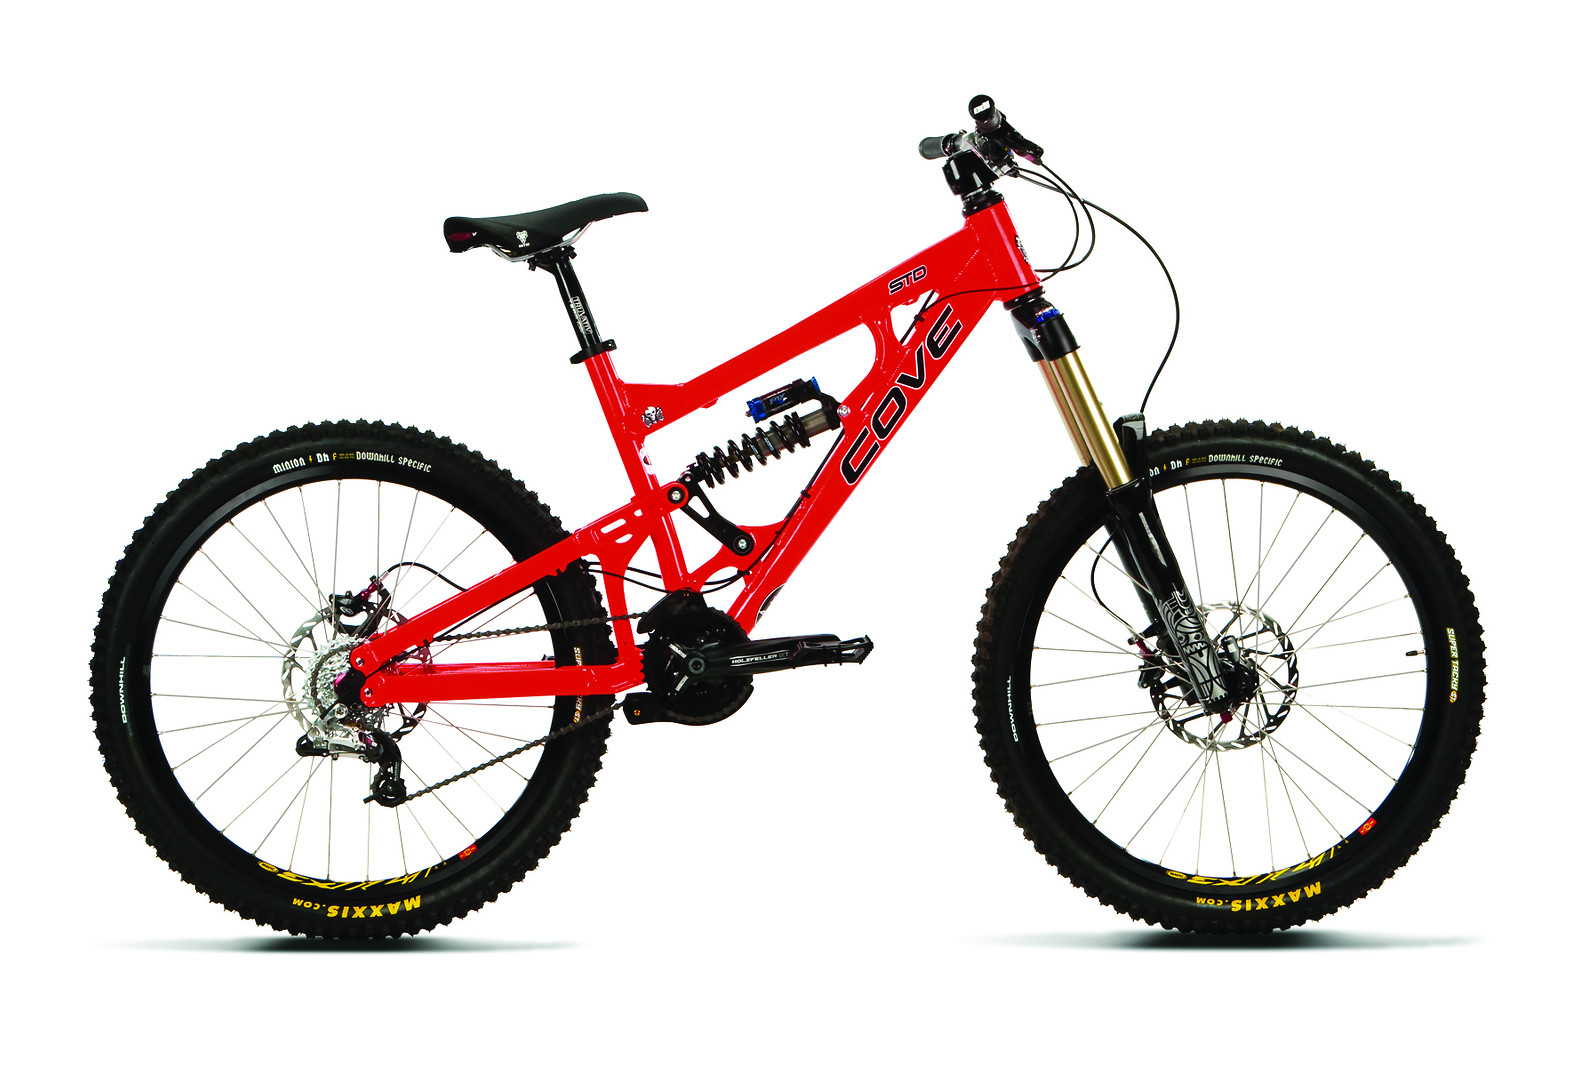 07f7e7339a2 2011 Cove STD Bike - Reviews, Comparisons, Specs - Mountain Bikes ...